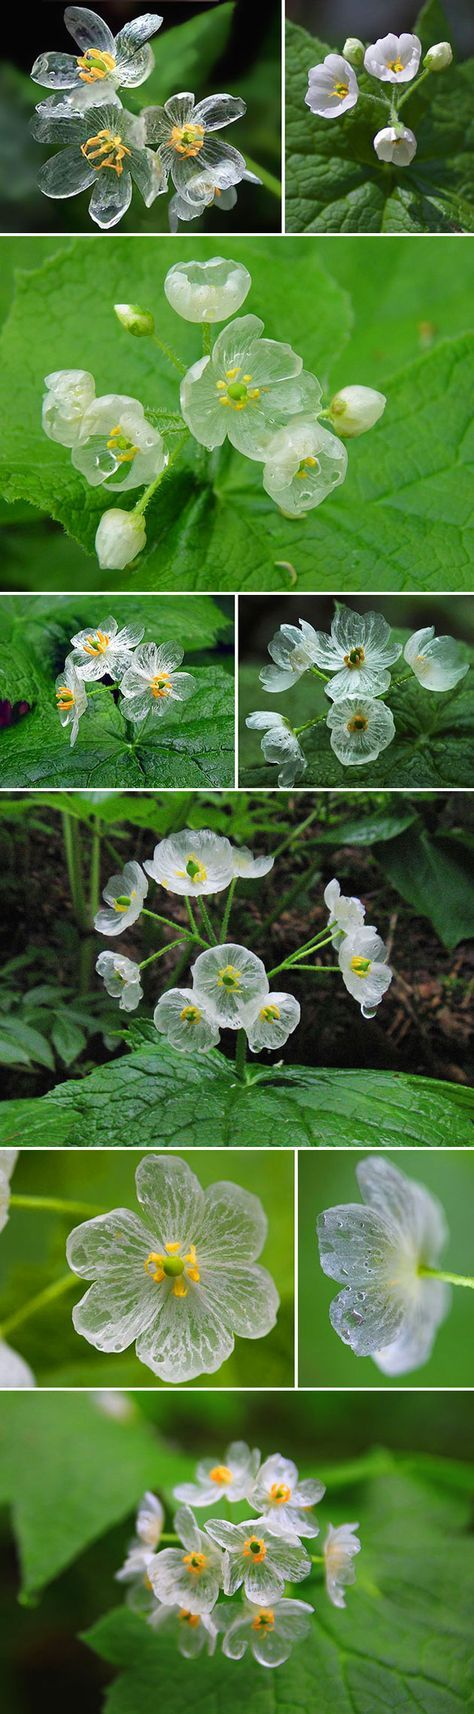 Say hello to the Skeleton Flower, a white woodland blossom whose petals turn crystal clear when they make contact with water. Diphelleia grayi, the scientific name of the Skeleton Flower, can be found in only three parts of the world. Oh, and when the the leaves dry out, they turn back to being white.